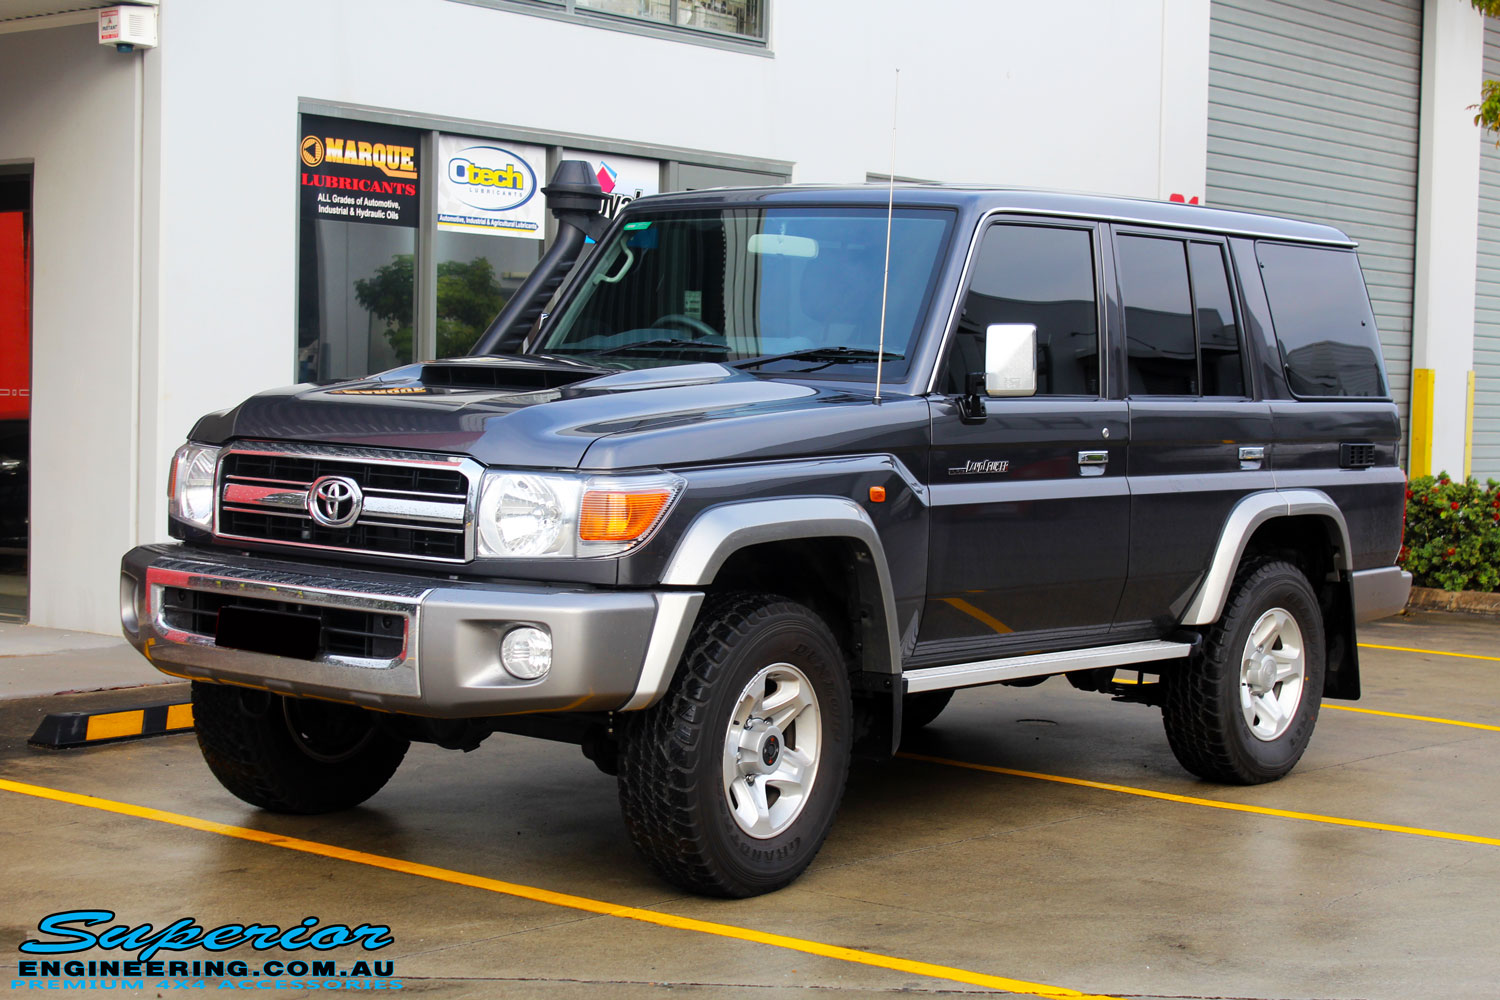 Toyota 76 Series Landcruiser Wagon Grey 91080 Superior